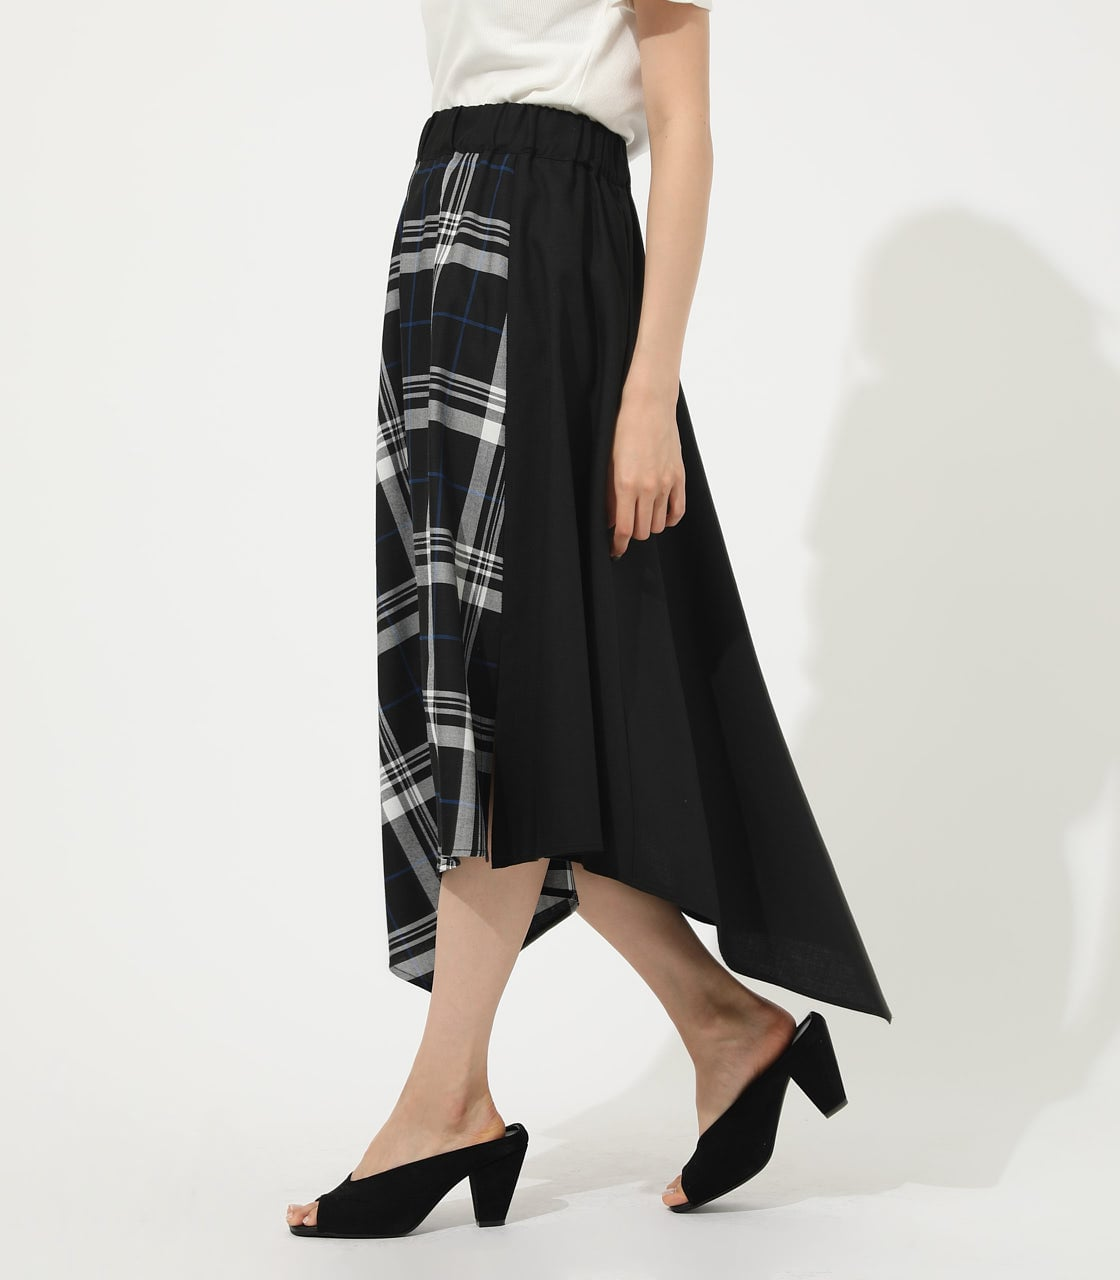 【AZUL BY MOUSSY】CHECK ASYMMETRY PATTERN SKIRT 詳細画像 柄BLK 2